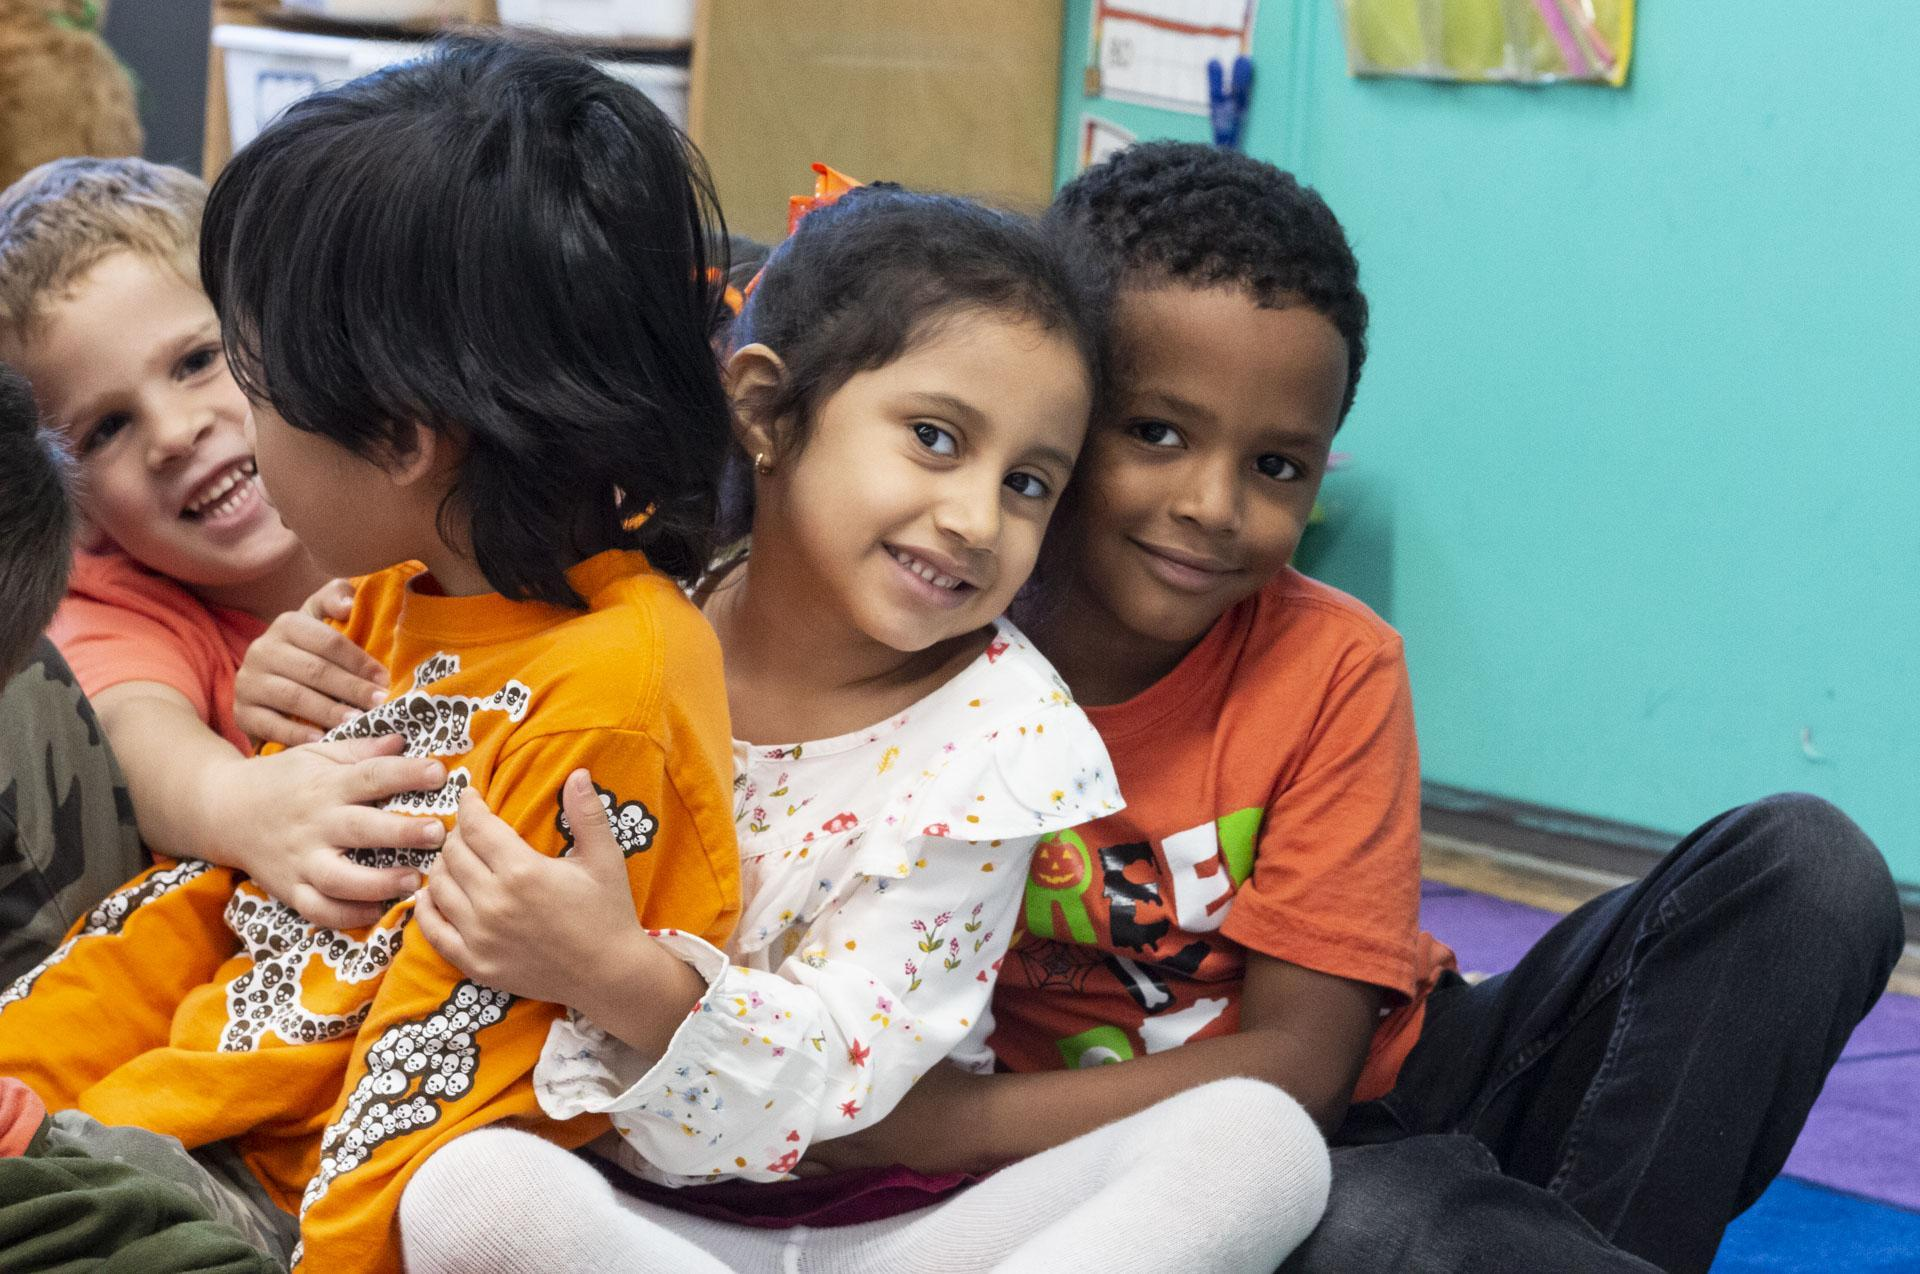 Elementary students hugging each other